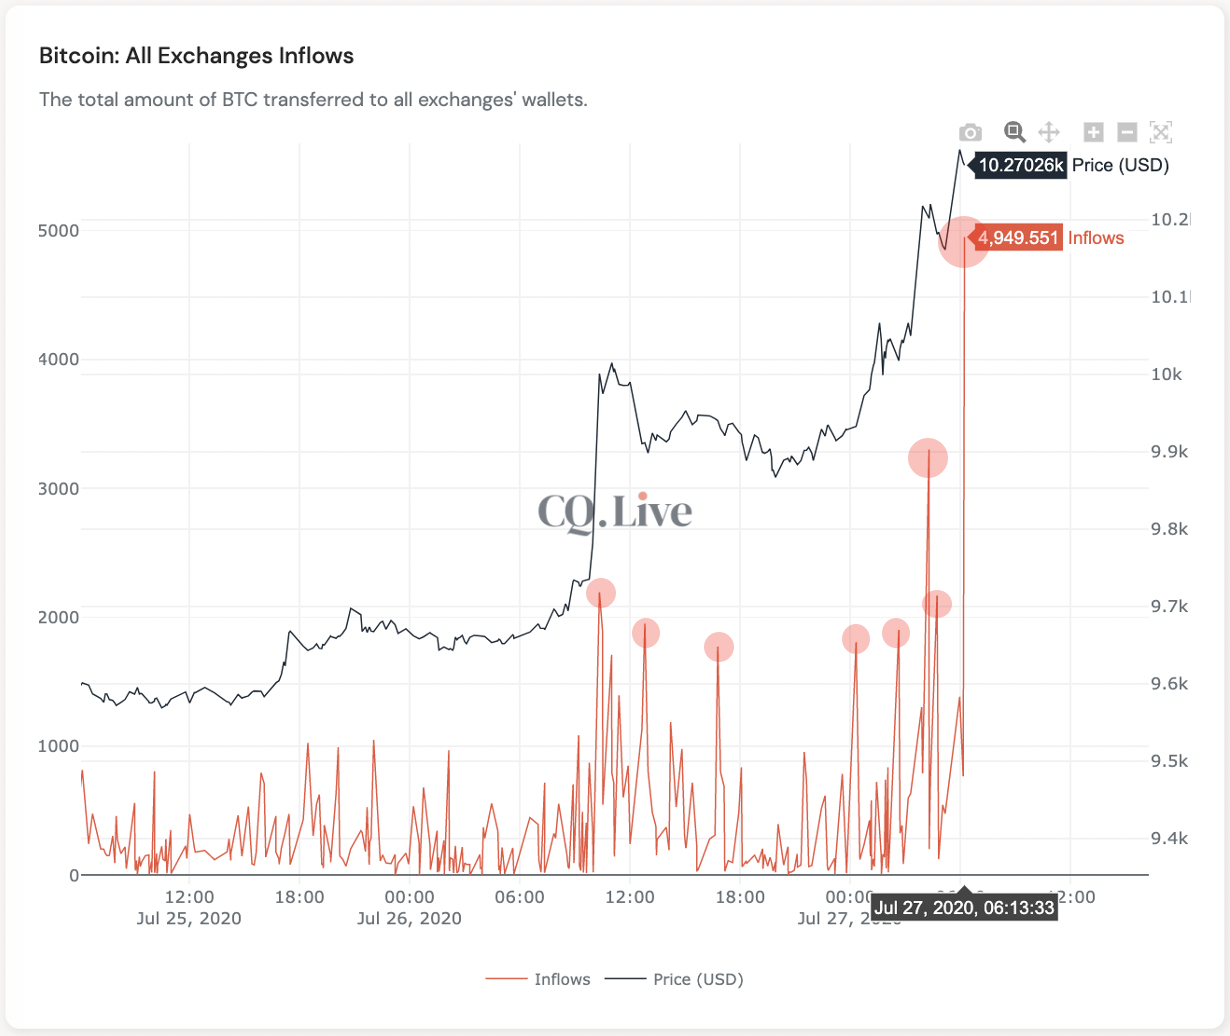 The Bitcoin exchange rate increases as the BTC rises